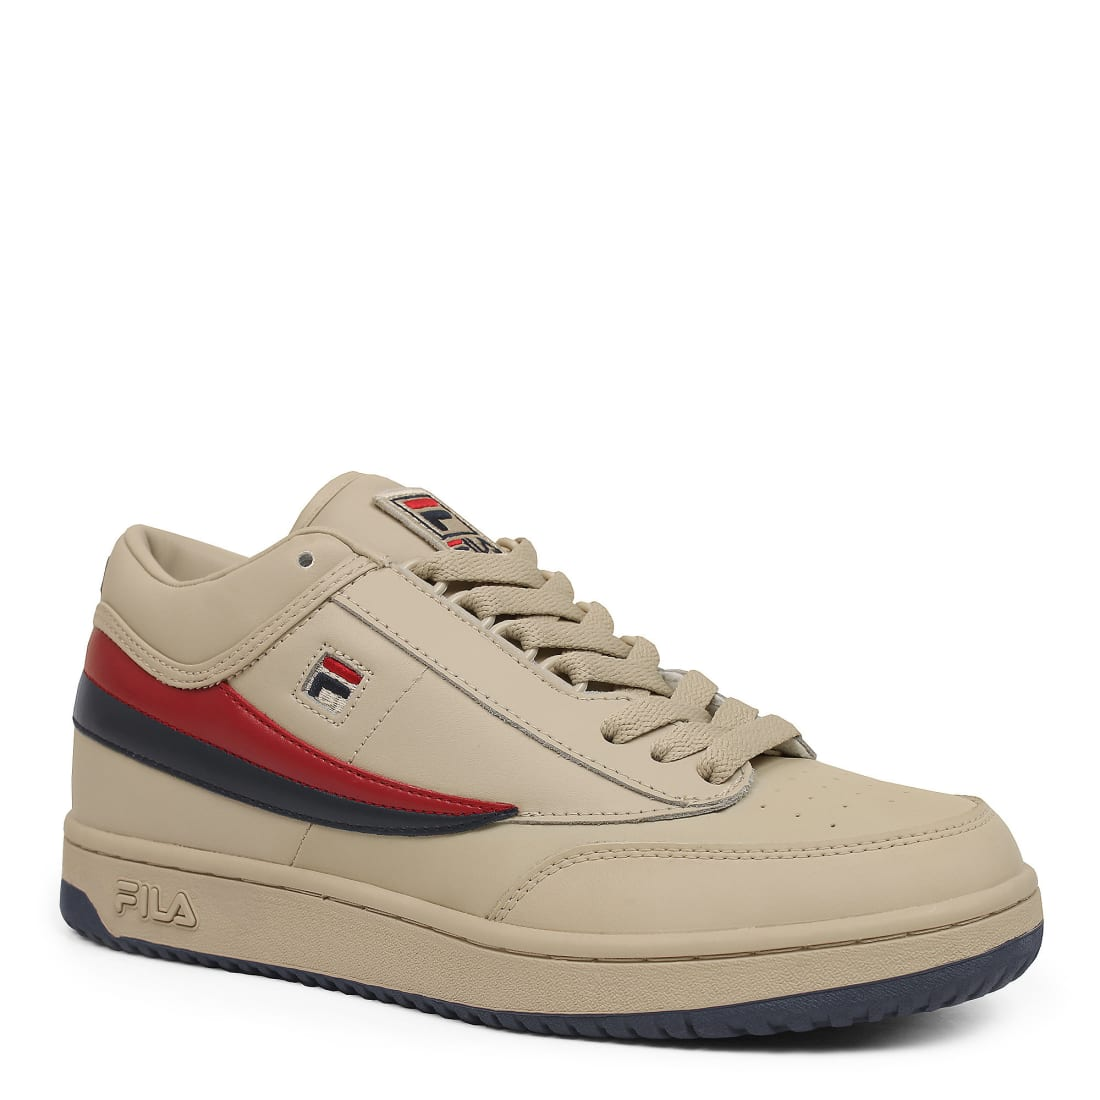 Fila T 1 radEneste samler rad Sole Collector